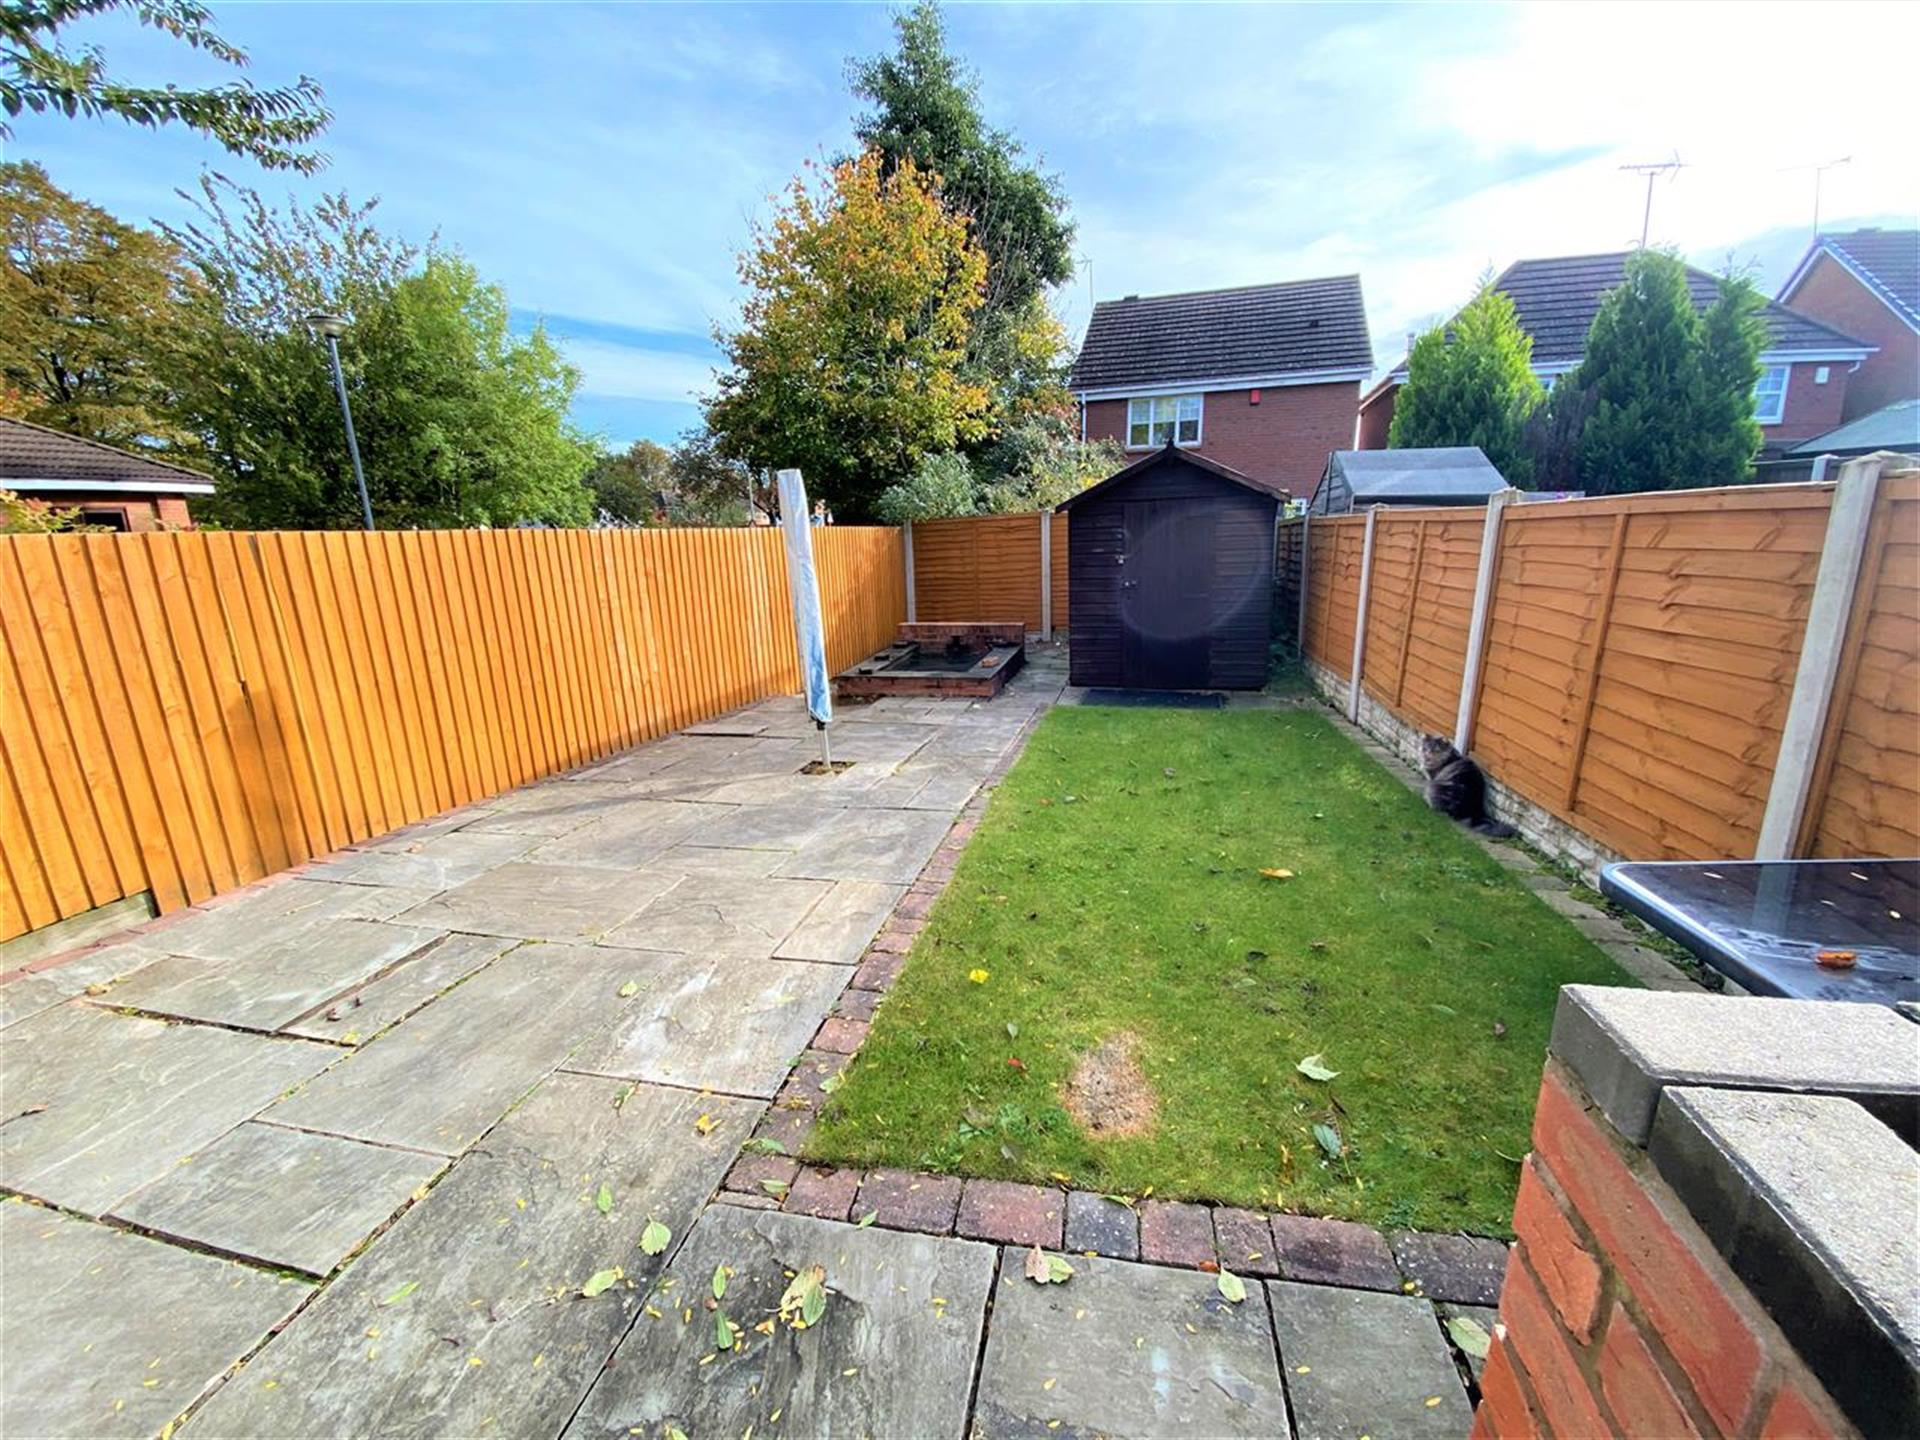 3 Bedroom End Terraced House For Sale - Garden